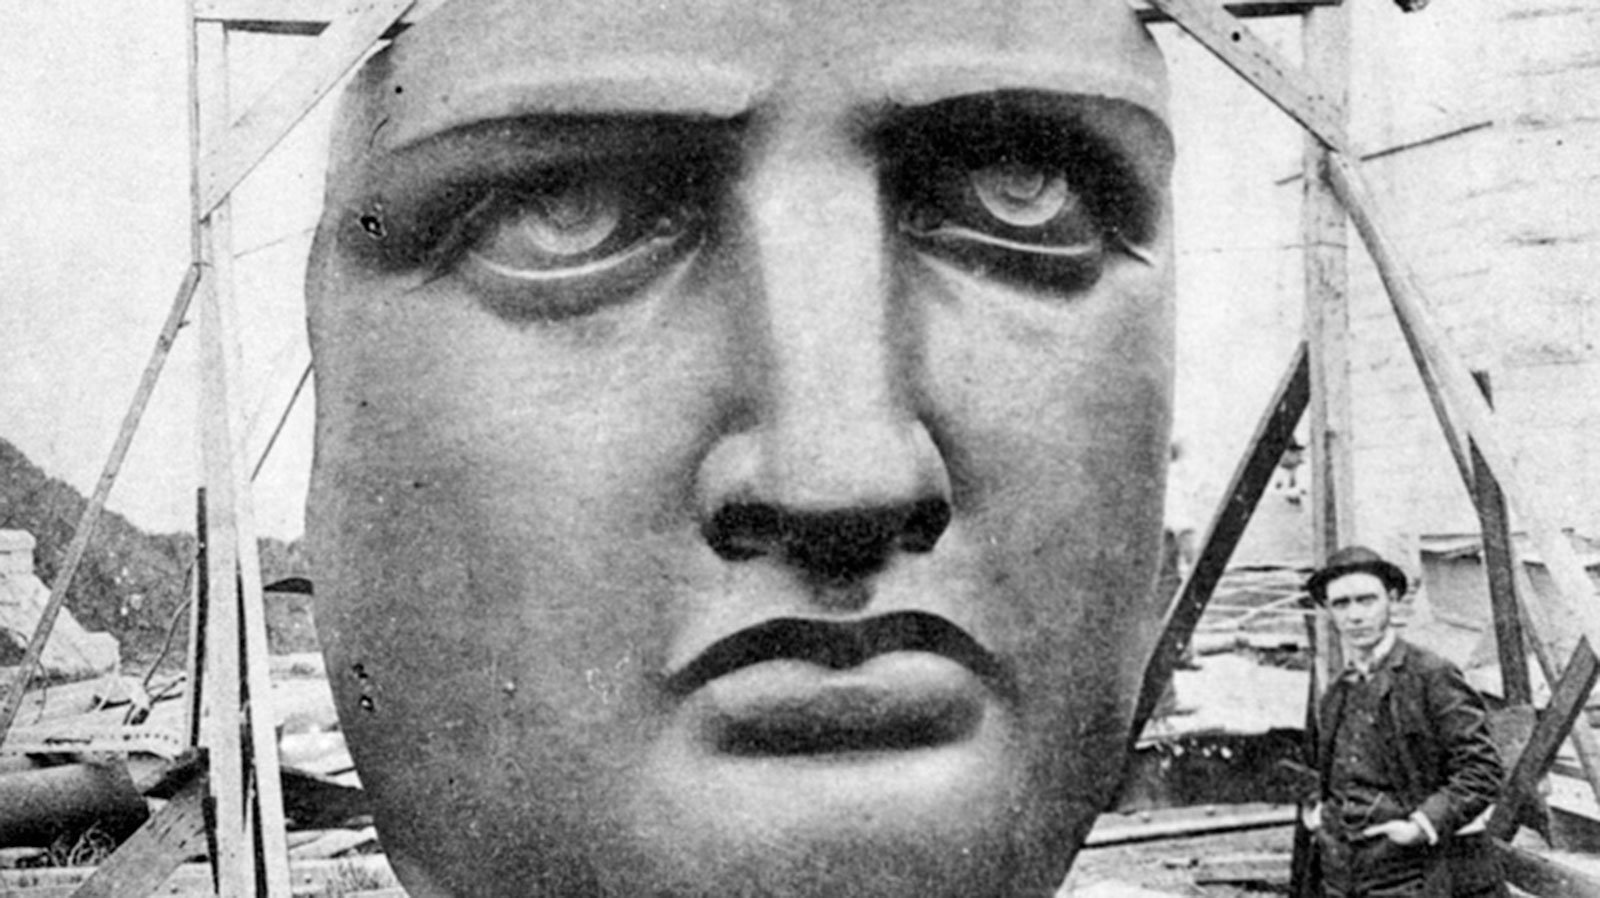 The Statue of Liberty's face waiting to be installed on Liberty Island, circa 1885